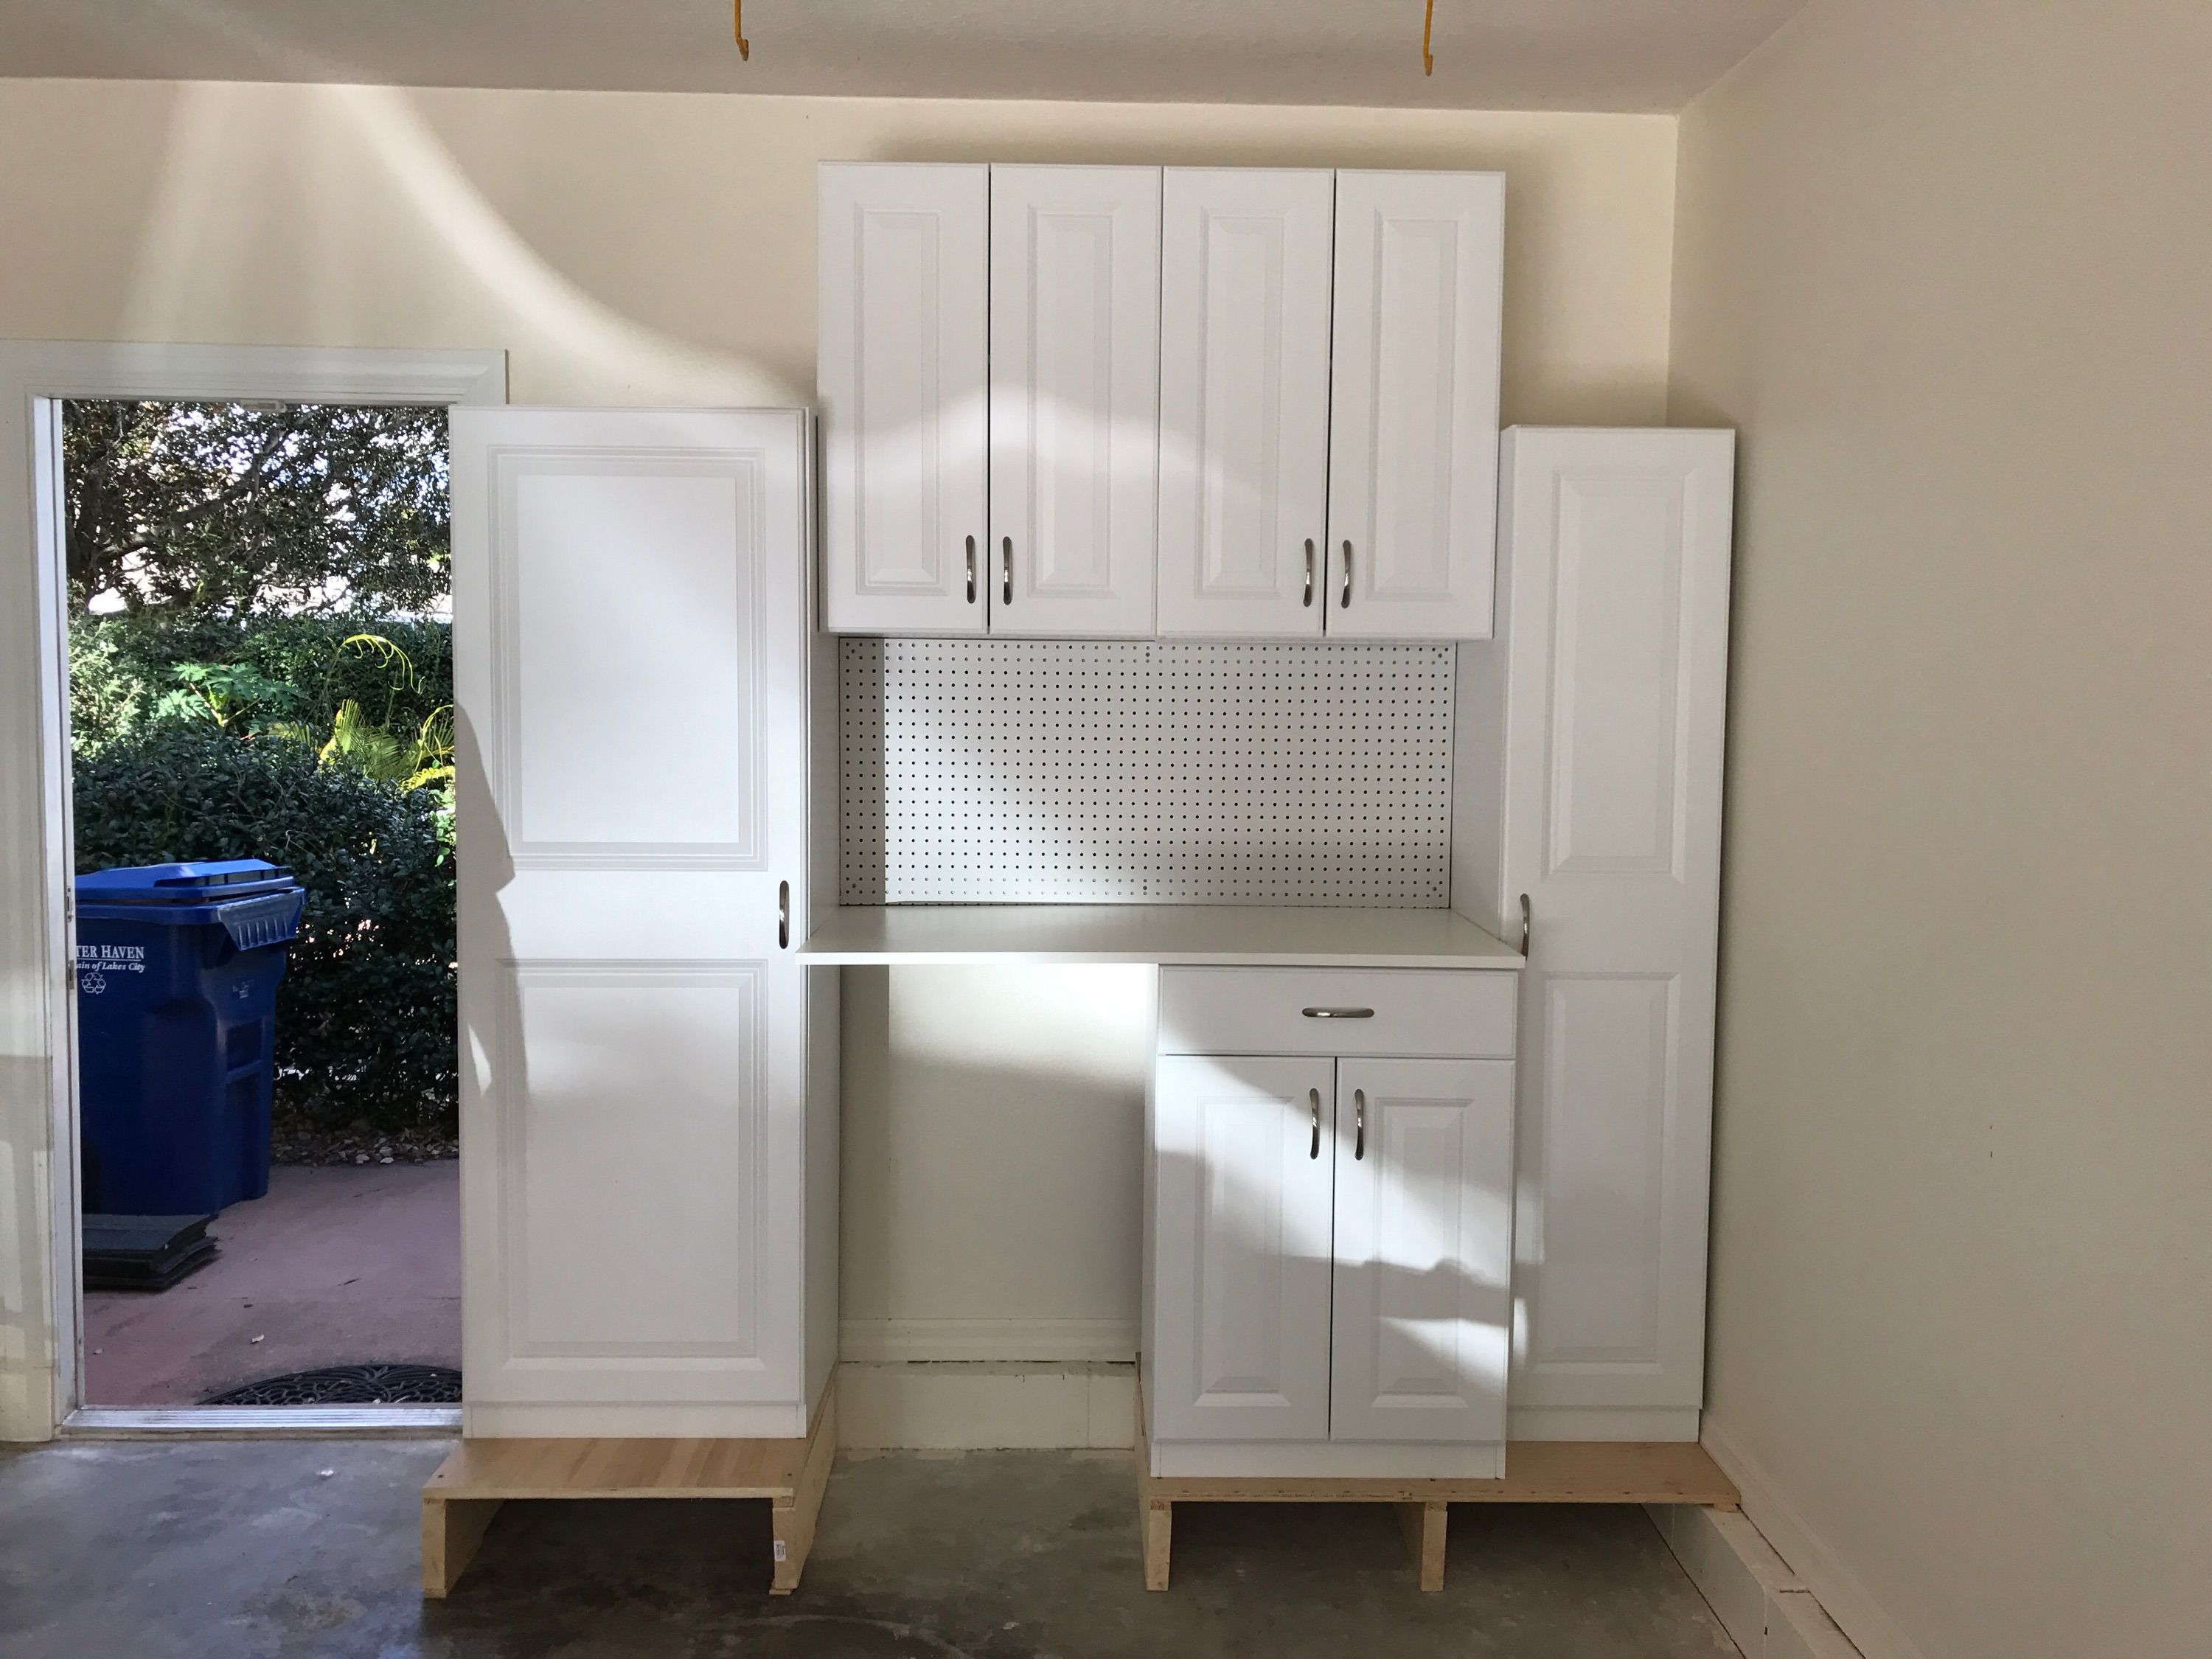 Estate Cabinets By Rsi From Lowe S Nice Storage Cabinets In My